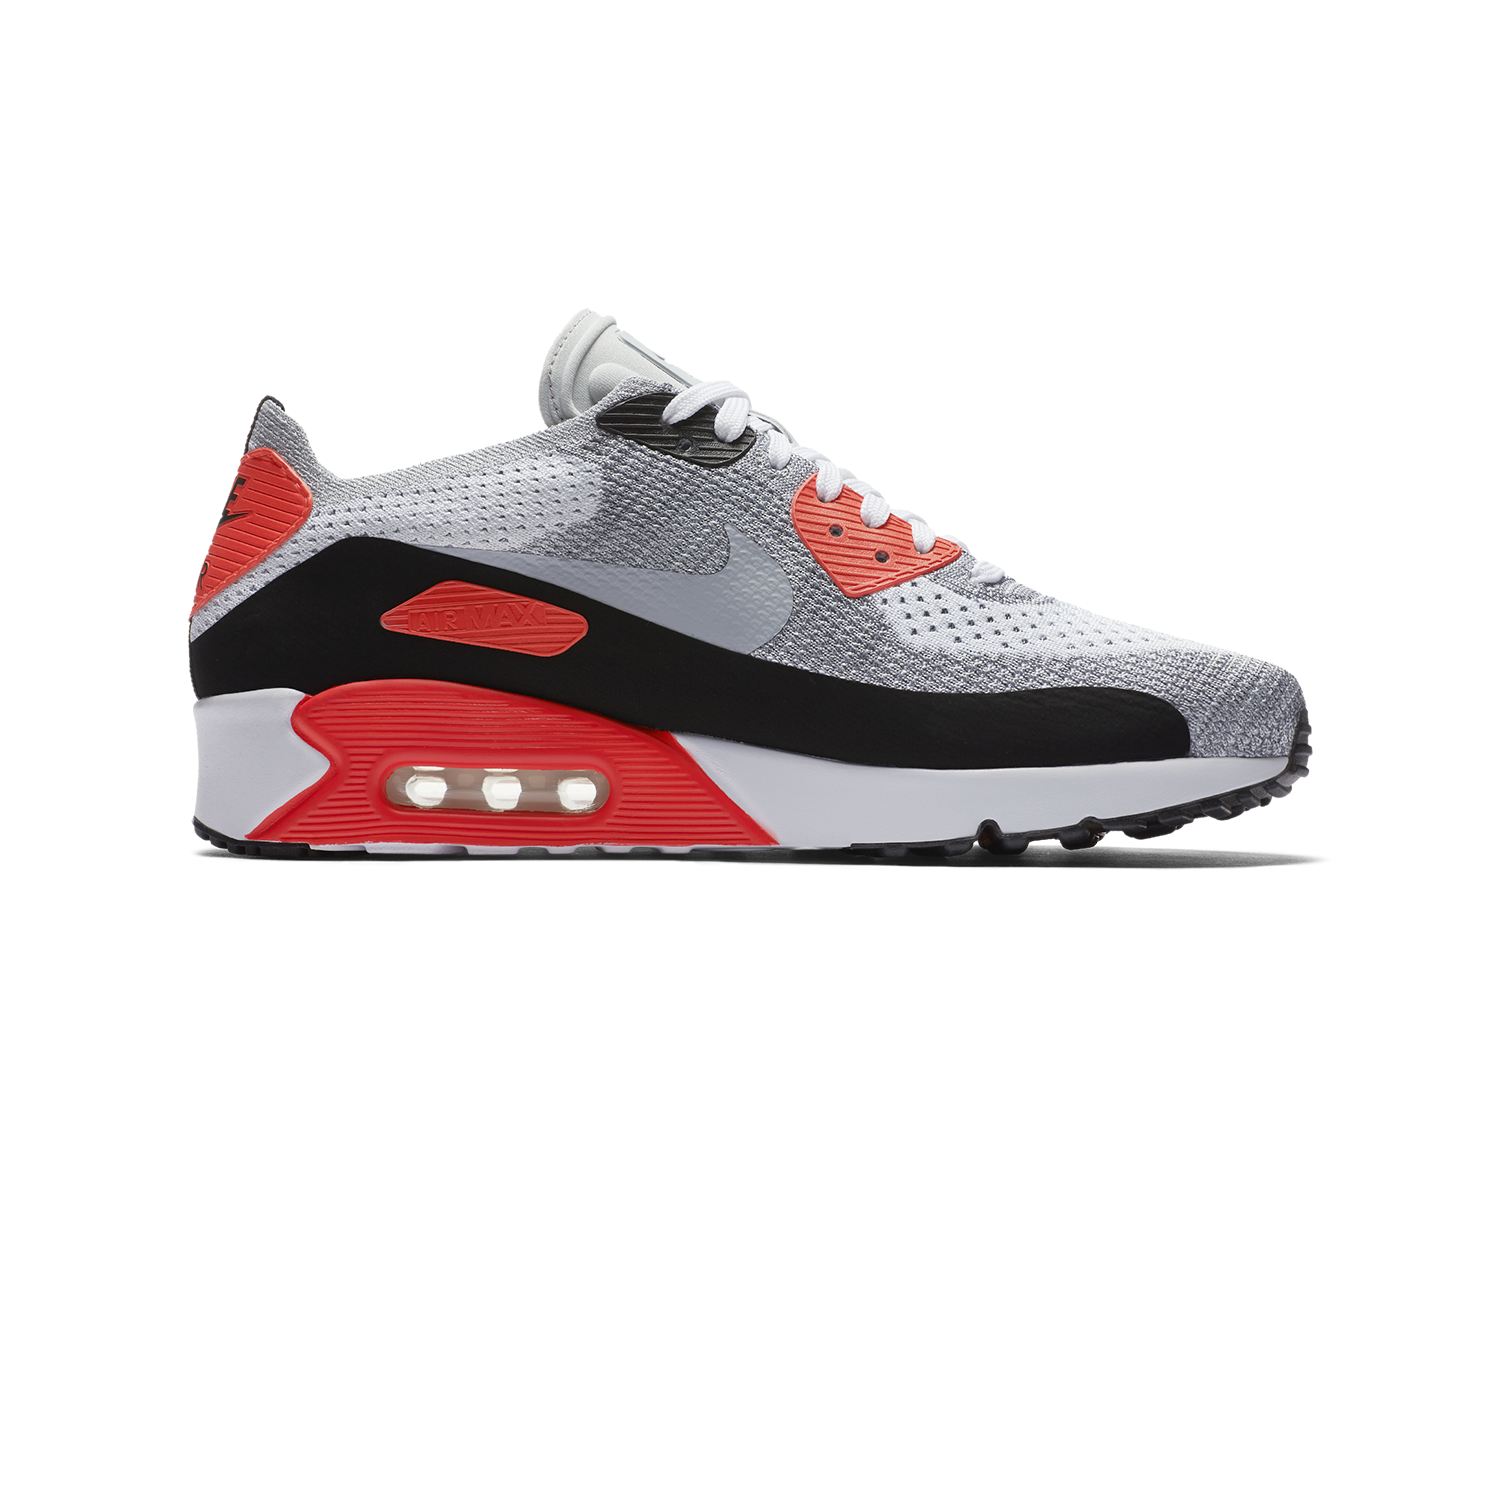 933a7db3a90c6 ... Air Max 90 Ultra 2.0 Flyknit infrared ...